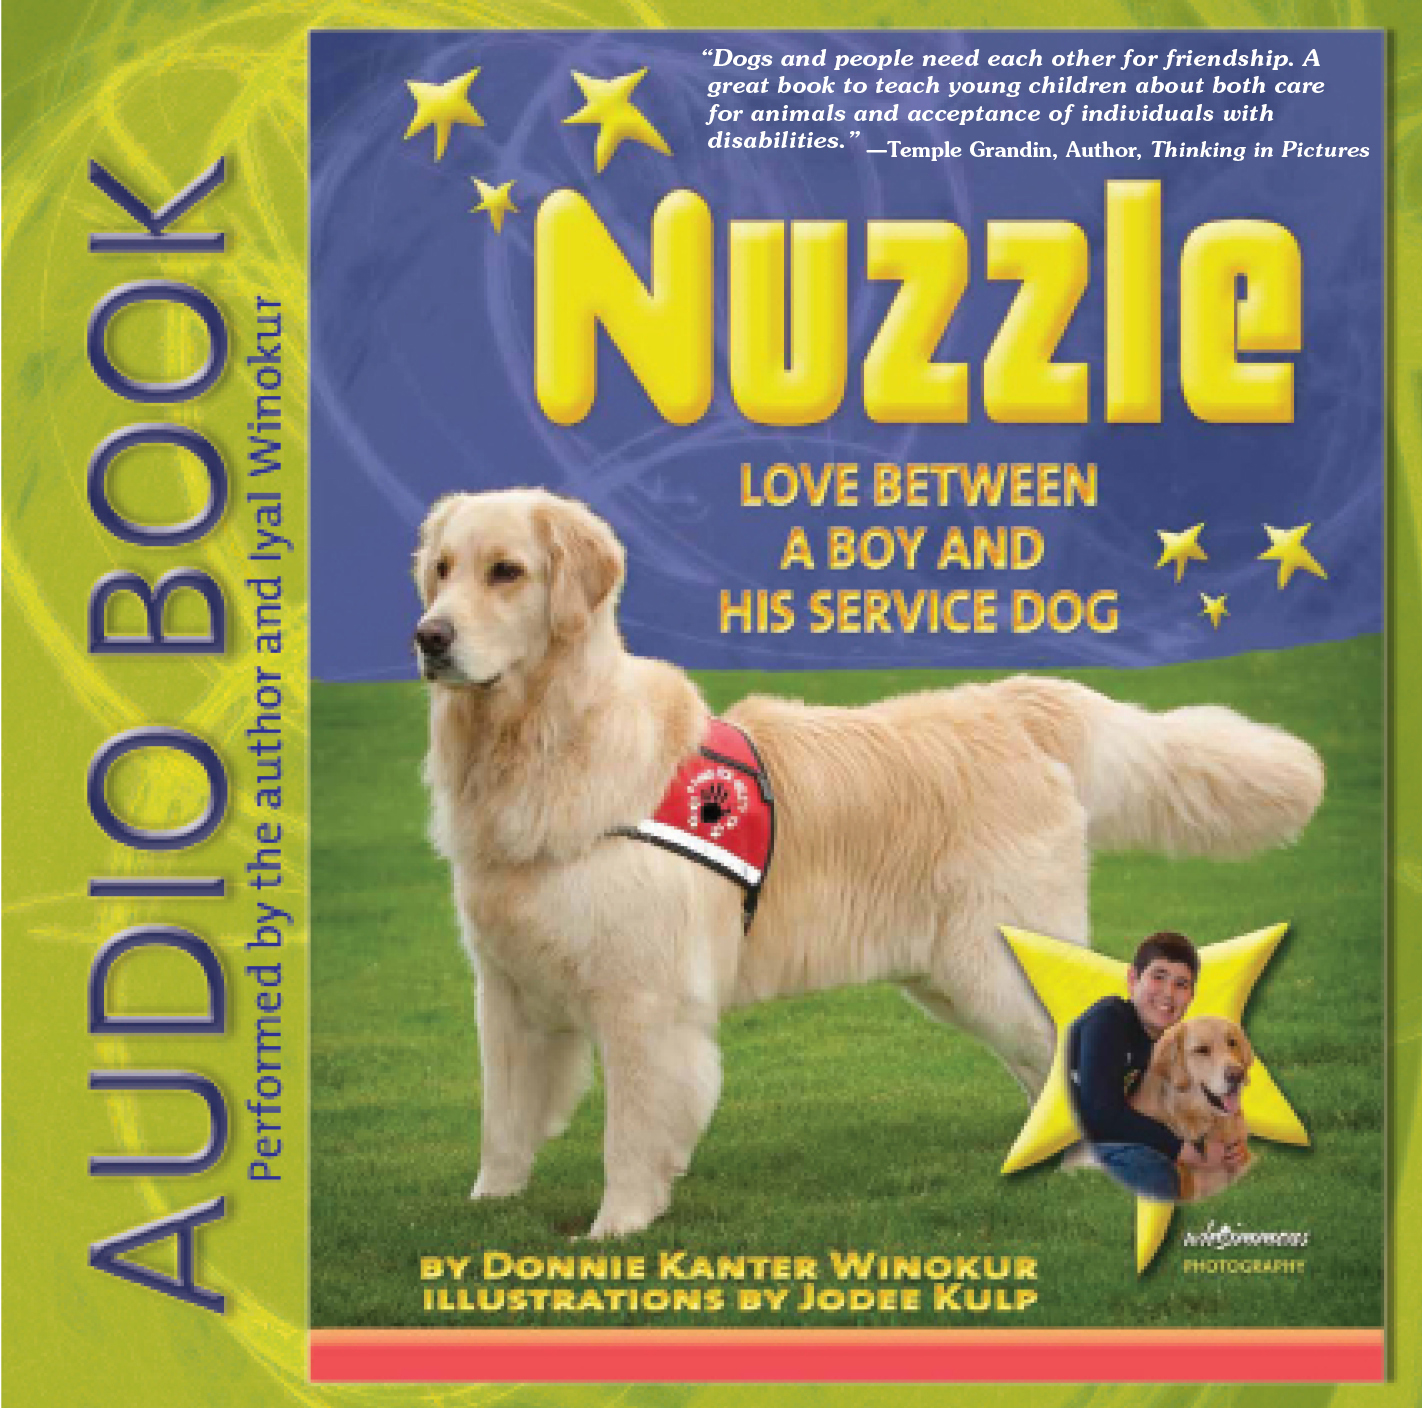 Nuzzle - Love Between a Boy and His Service Dog by Donnie Kanter Winokur